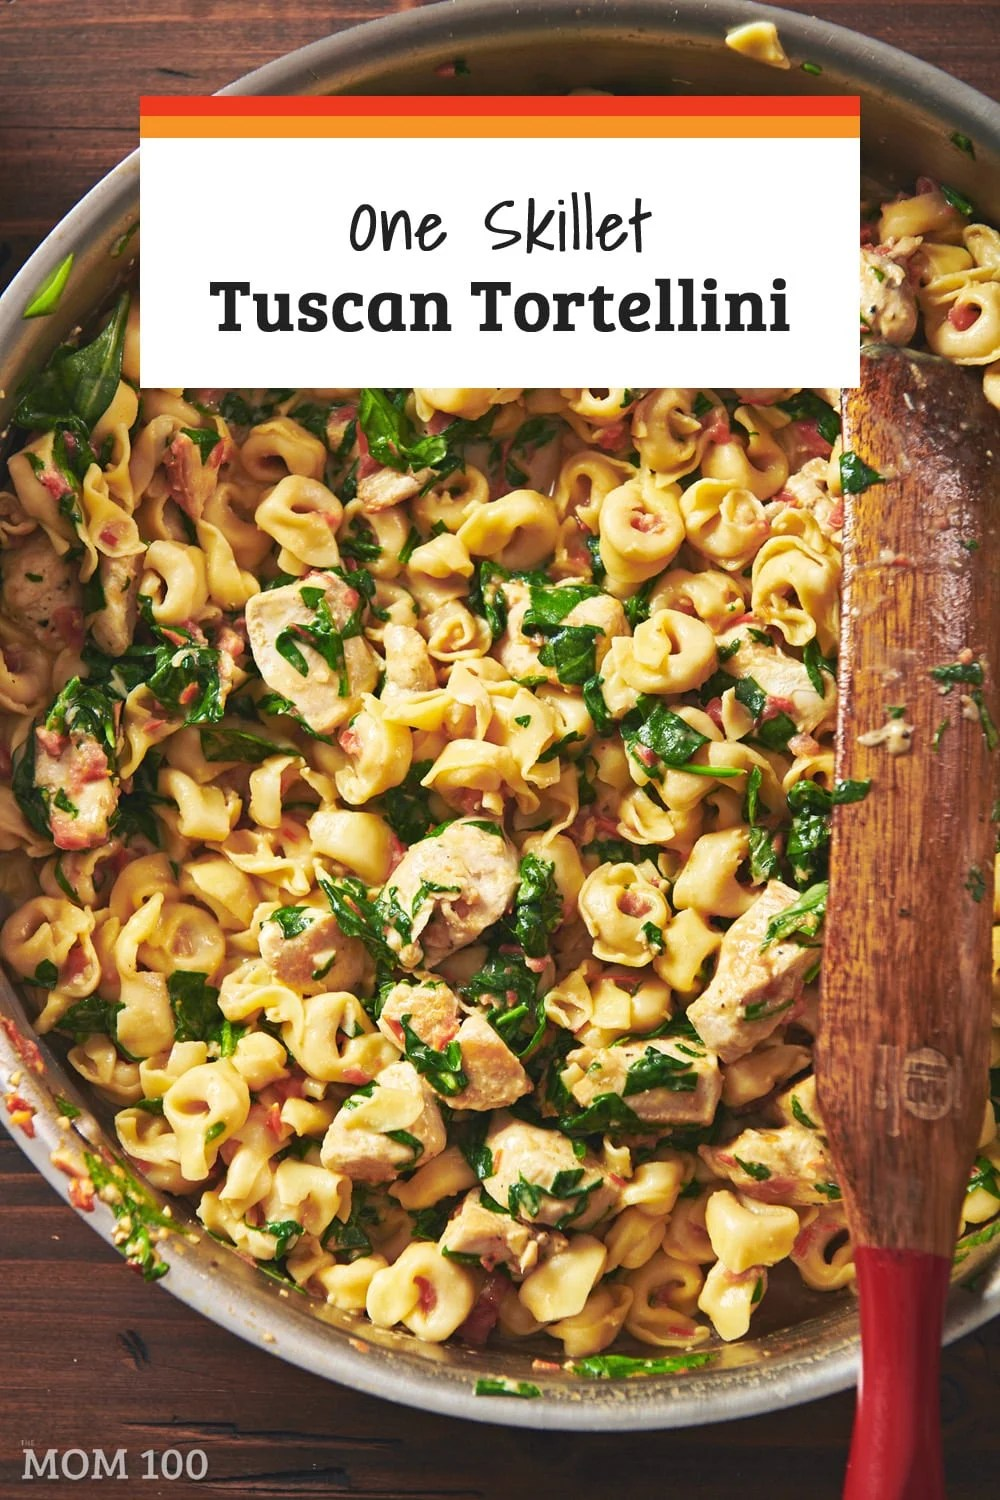 One Skillet Tuscan Tortellini: This filled pasta recipe is colorful with spinach and tomatoes, and lush with a nice pour of cream.